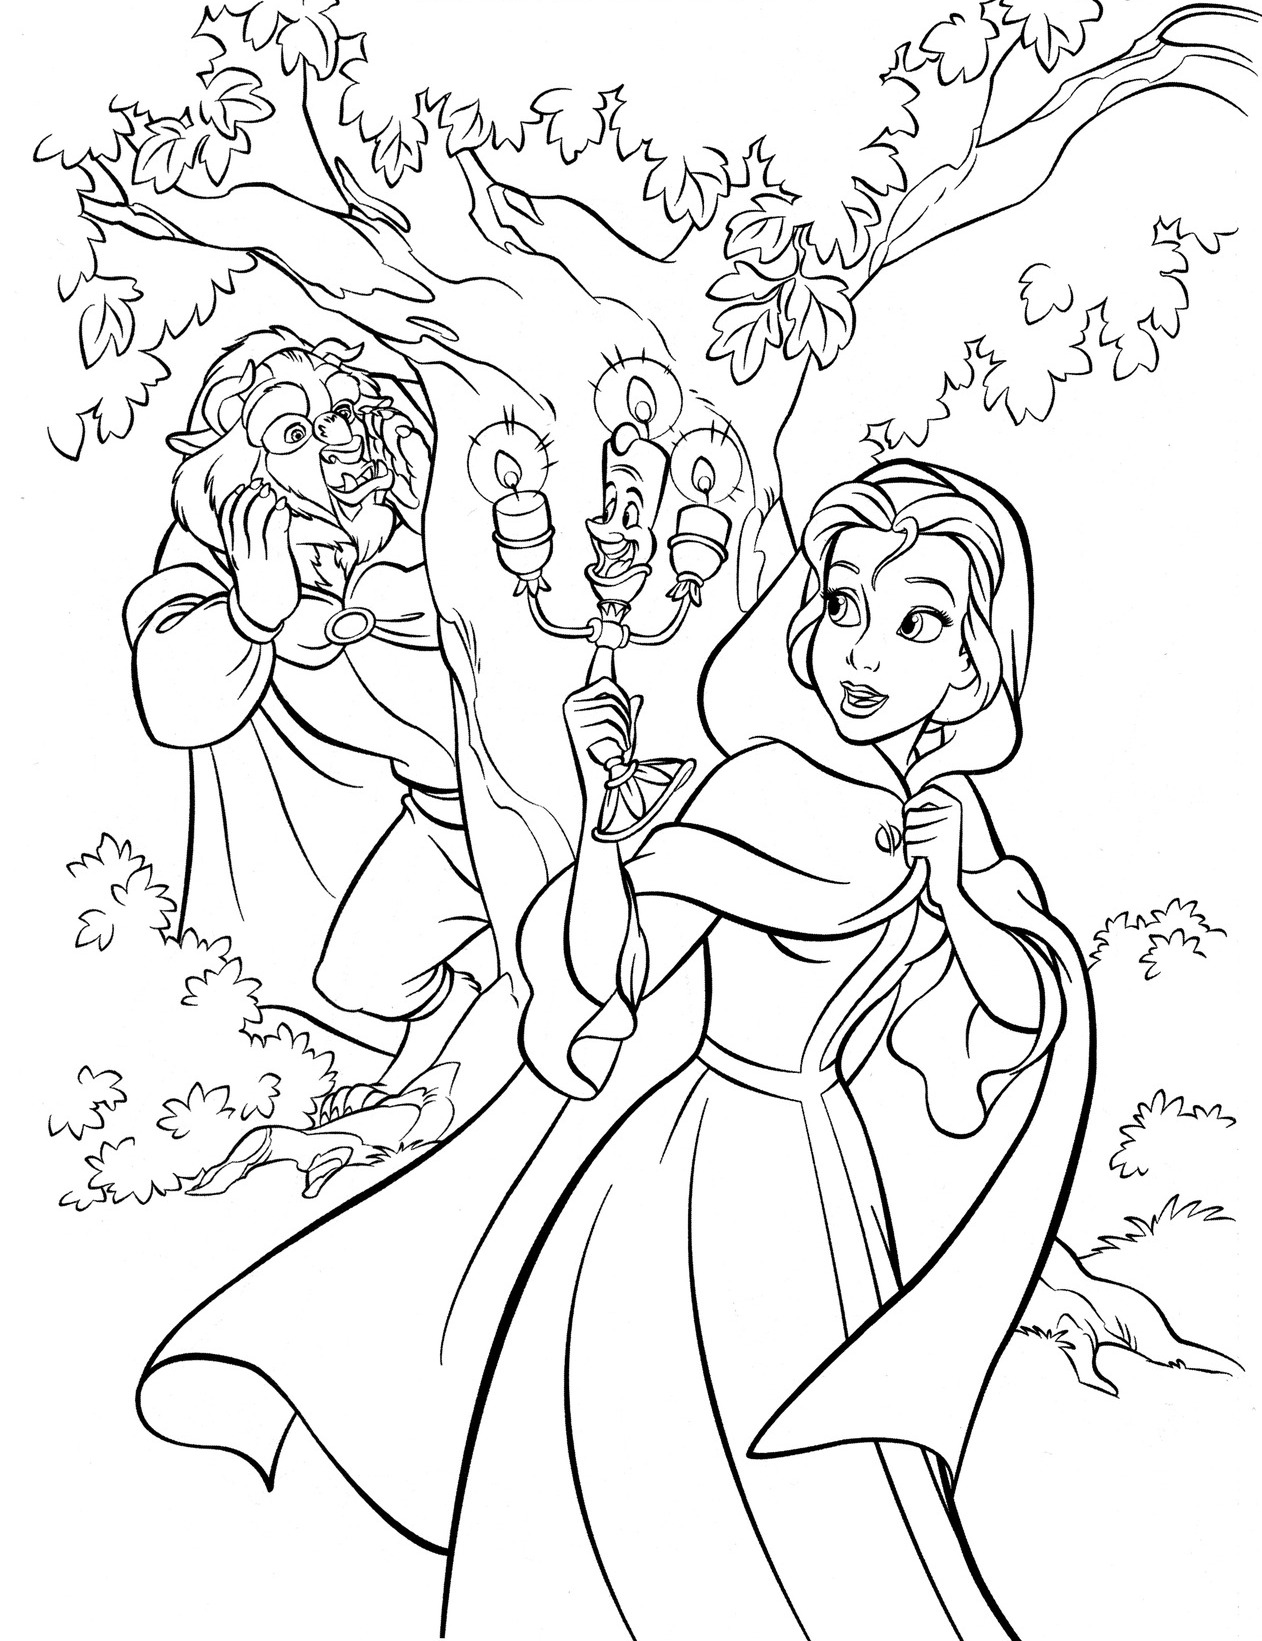 1262x1641 Disney Beauty And The Beast Rose Coloring Page Hicoloringpages